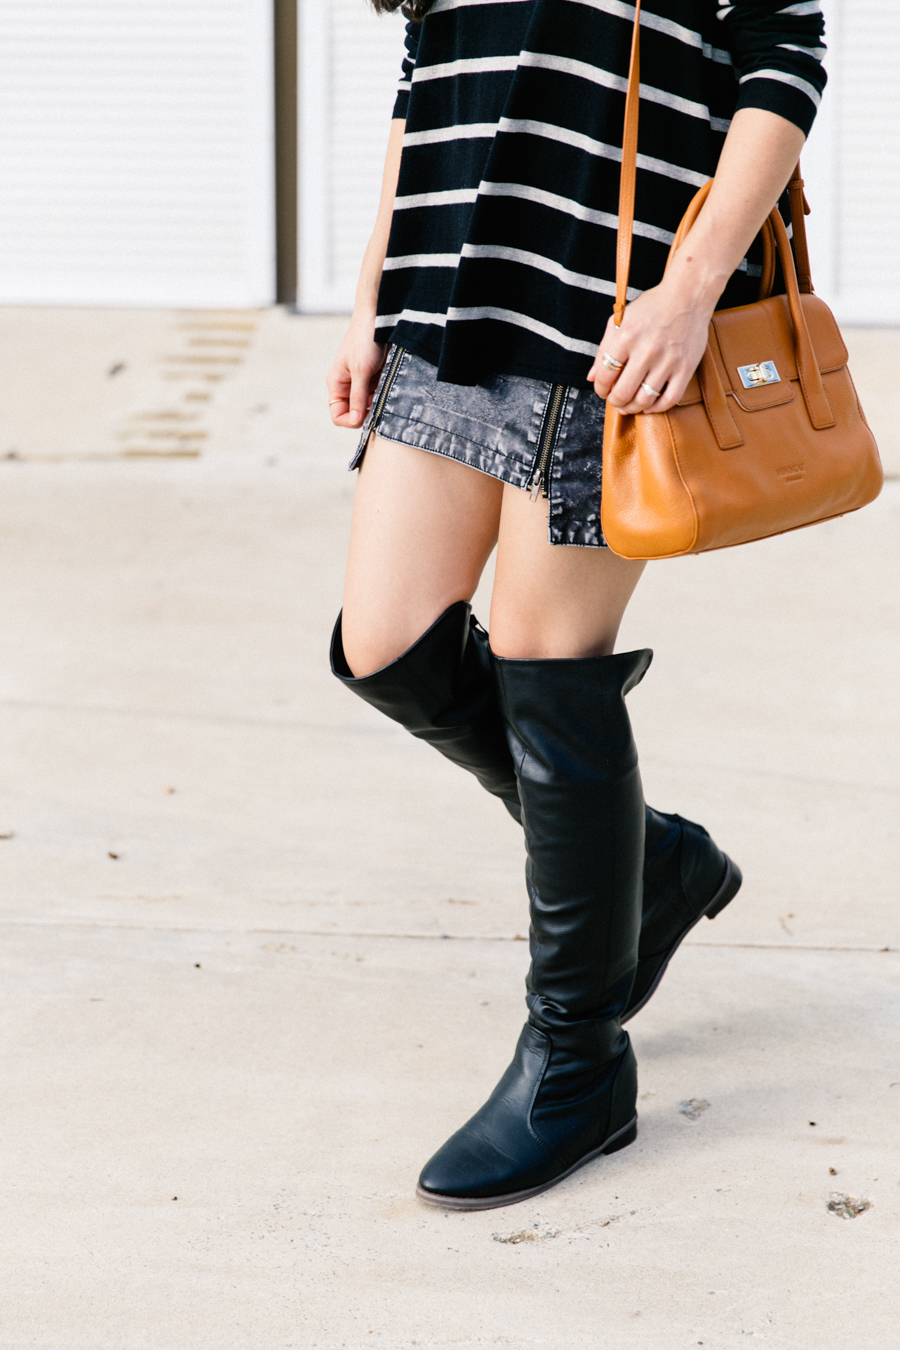 Denim skirt with knee high boots outfit. Minskat Copenhagen Helena bag.